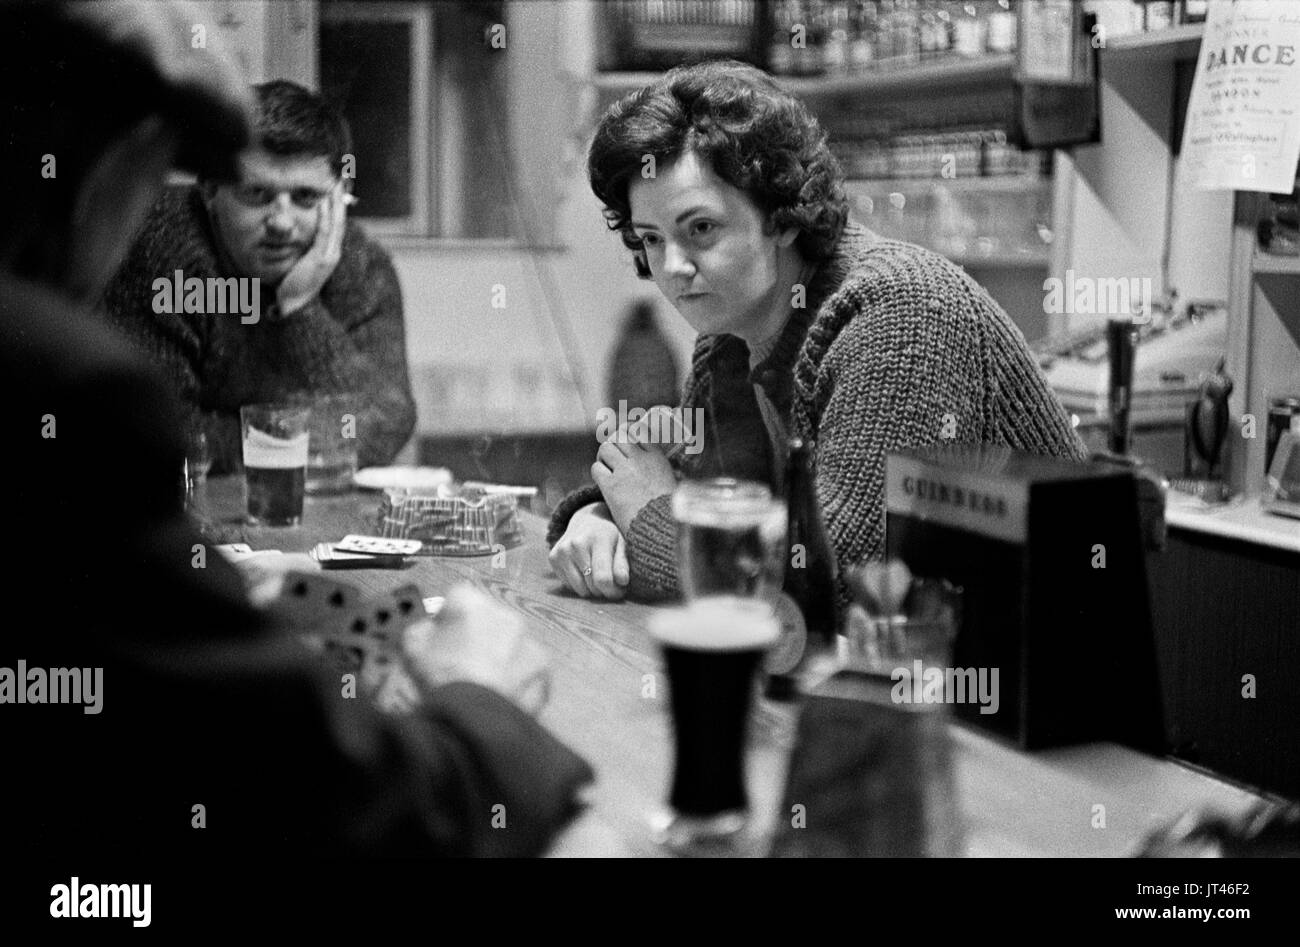 Ireland west coast group people playing cards in village pub, landlady playing cards with customers friendship community daily life 1969 1960s HOMER SYKES - Stock Image